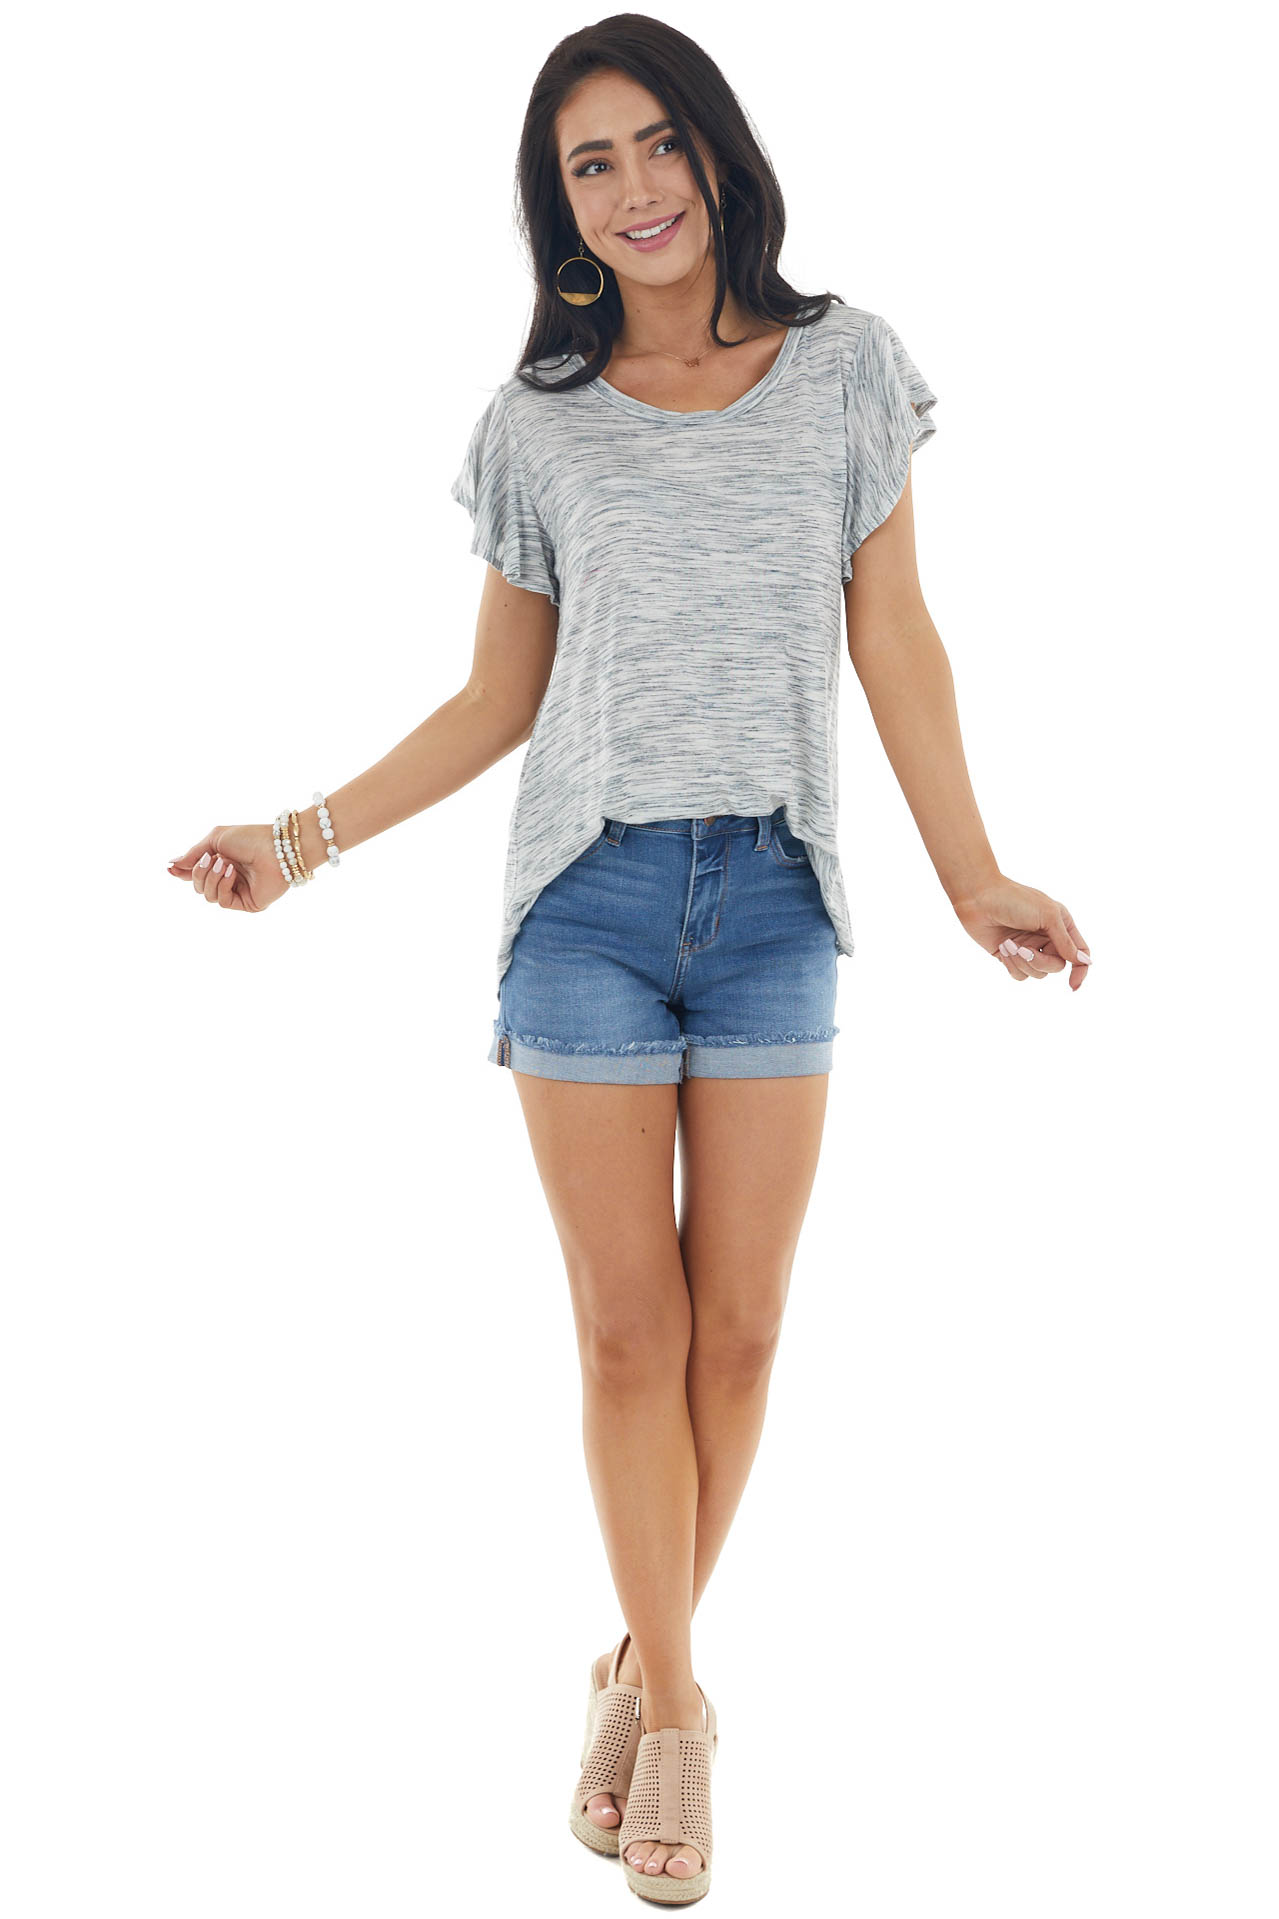 Heather Grey and Charcoal Knit Top with Flutter Sleeves